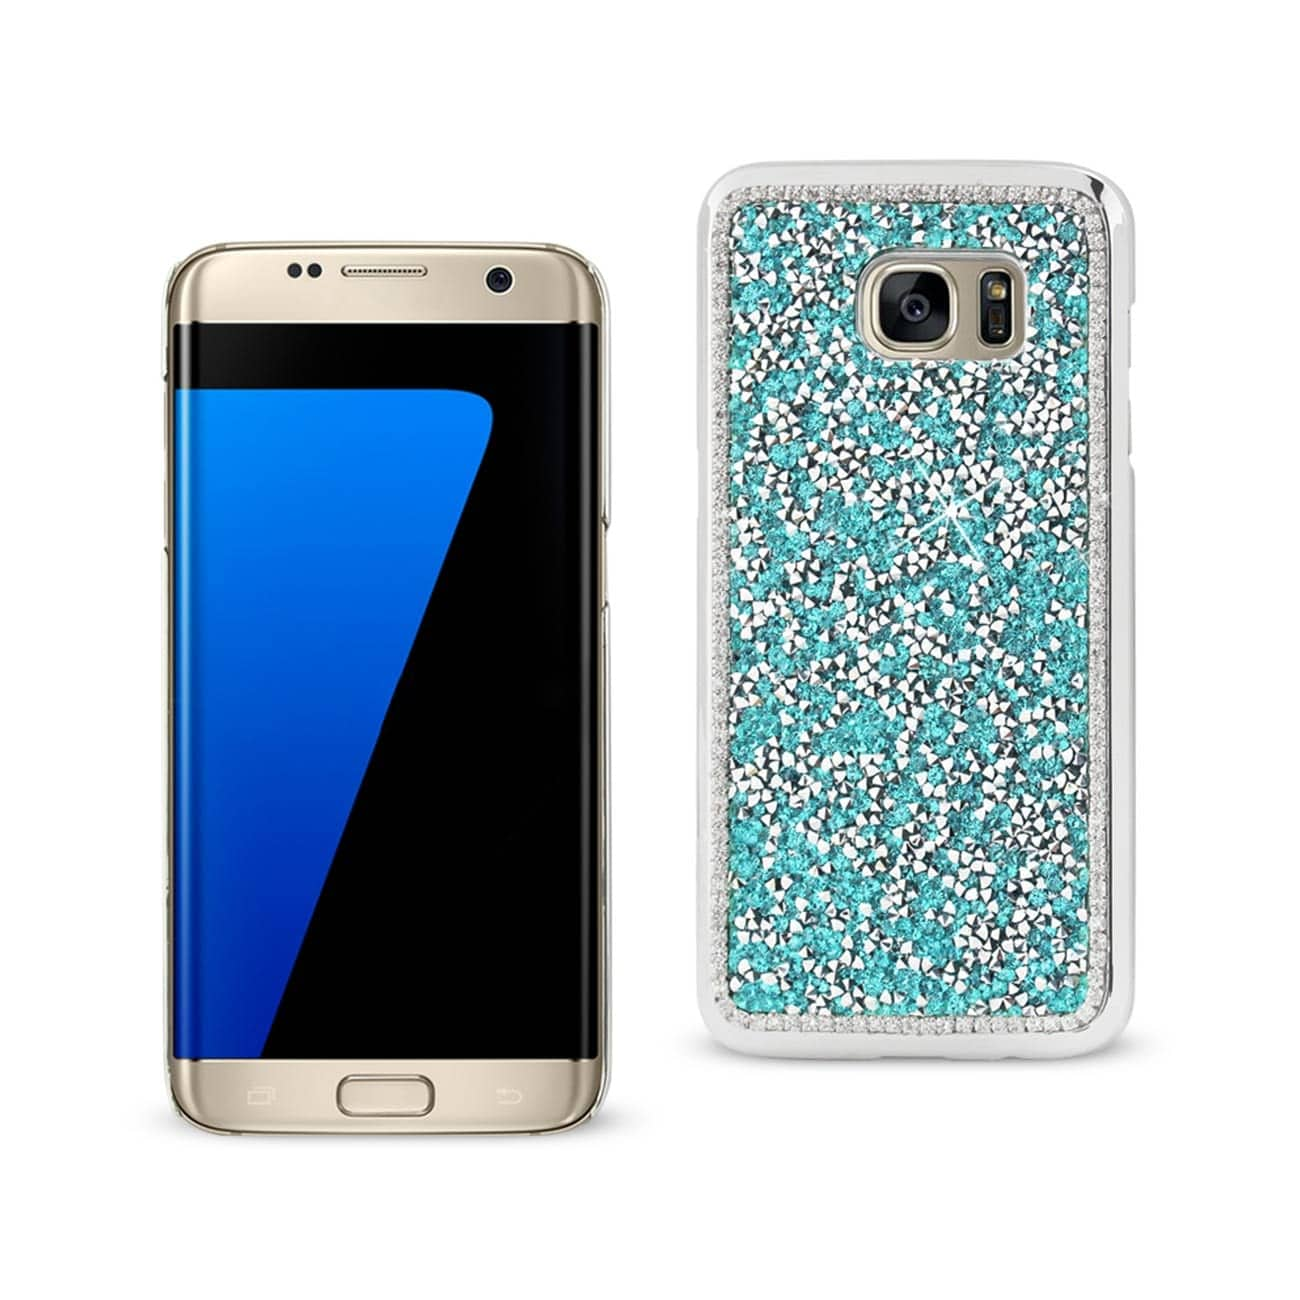 SAMSUNG GALAXY S7 EDGE JEWELRY BLING RHINESTONE CASE IN BLUE